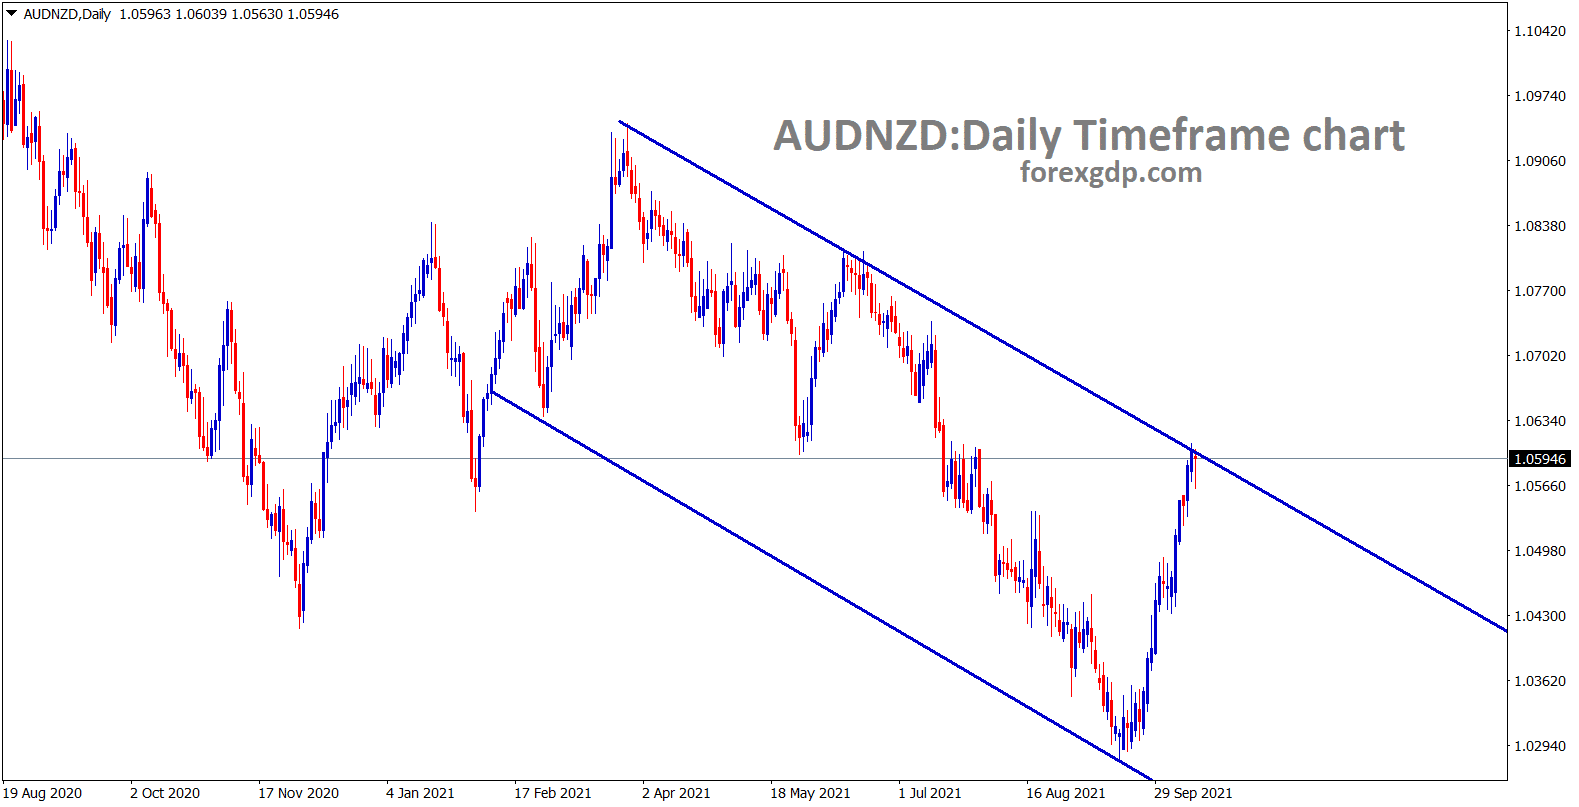 AUDNZD hits the lower high area of the descending channel line